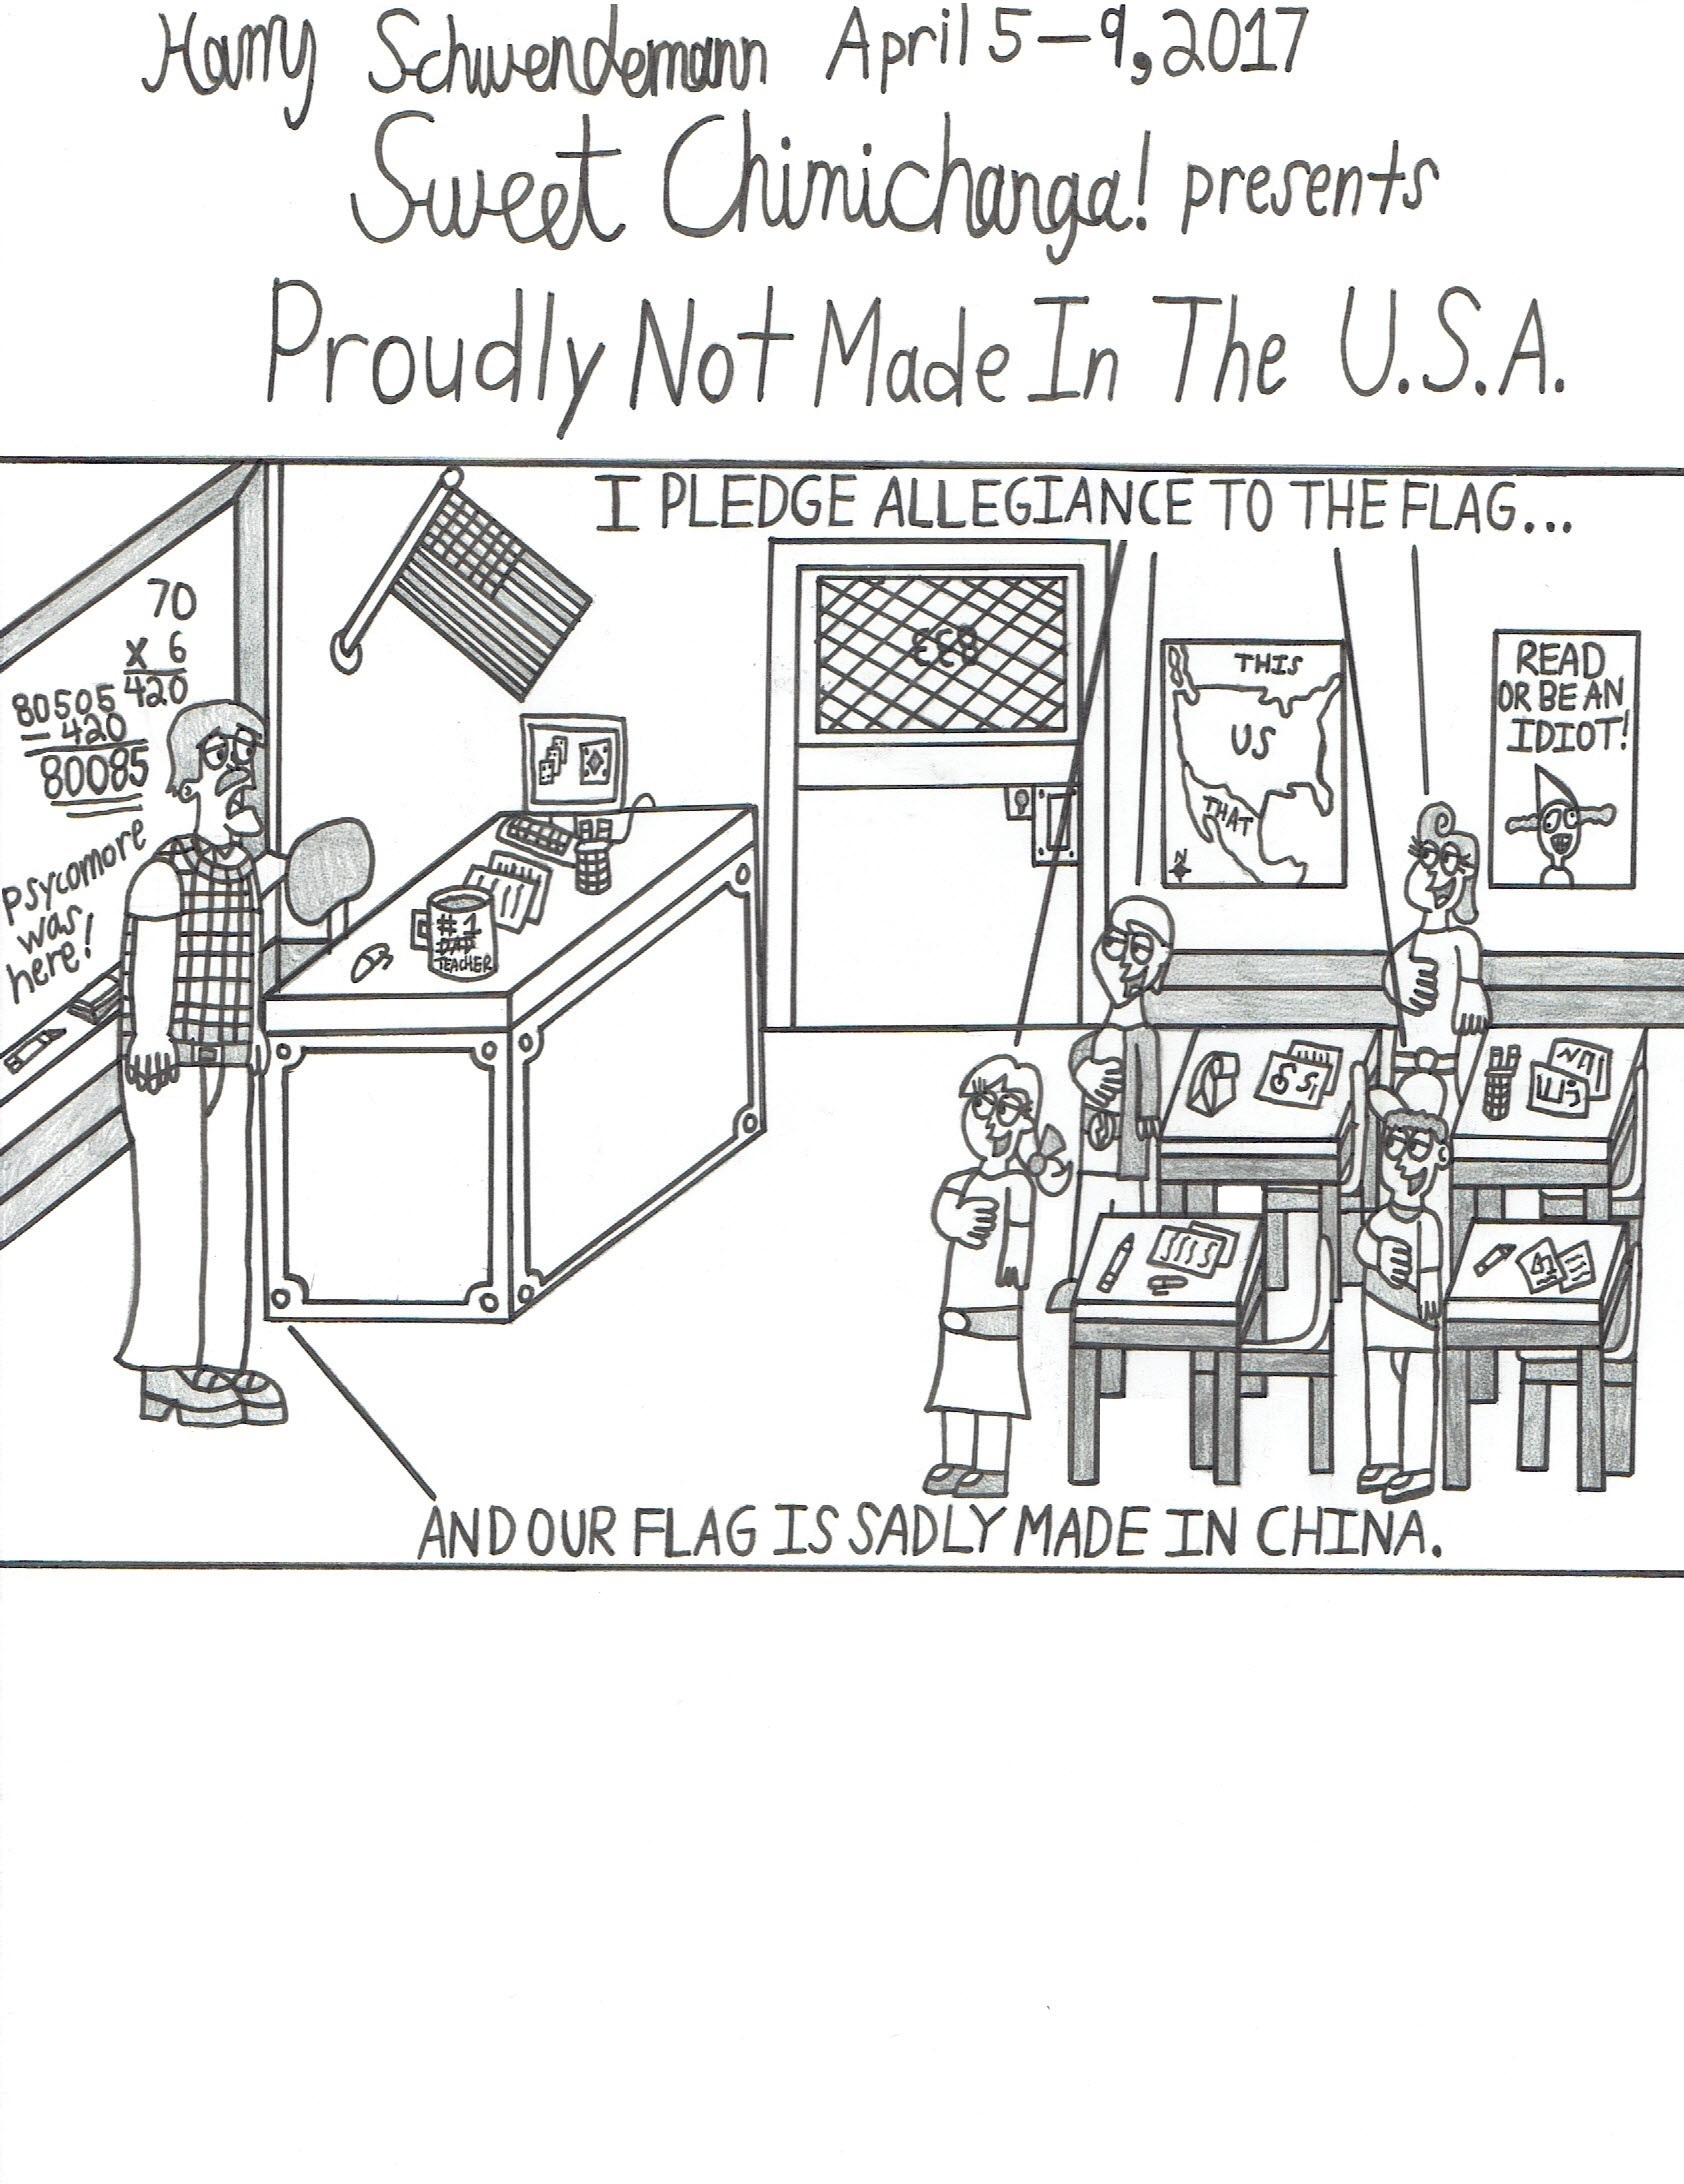 Proudly Not Made In The U.S.A.